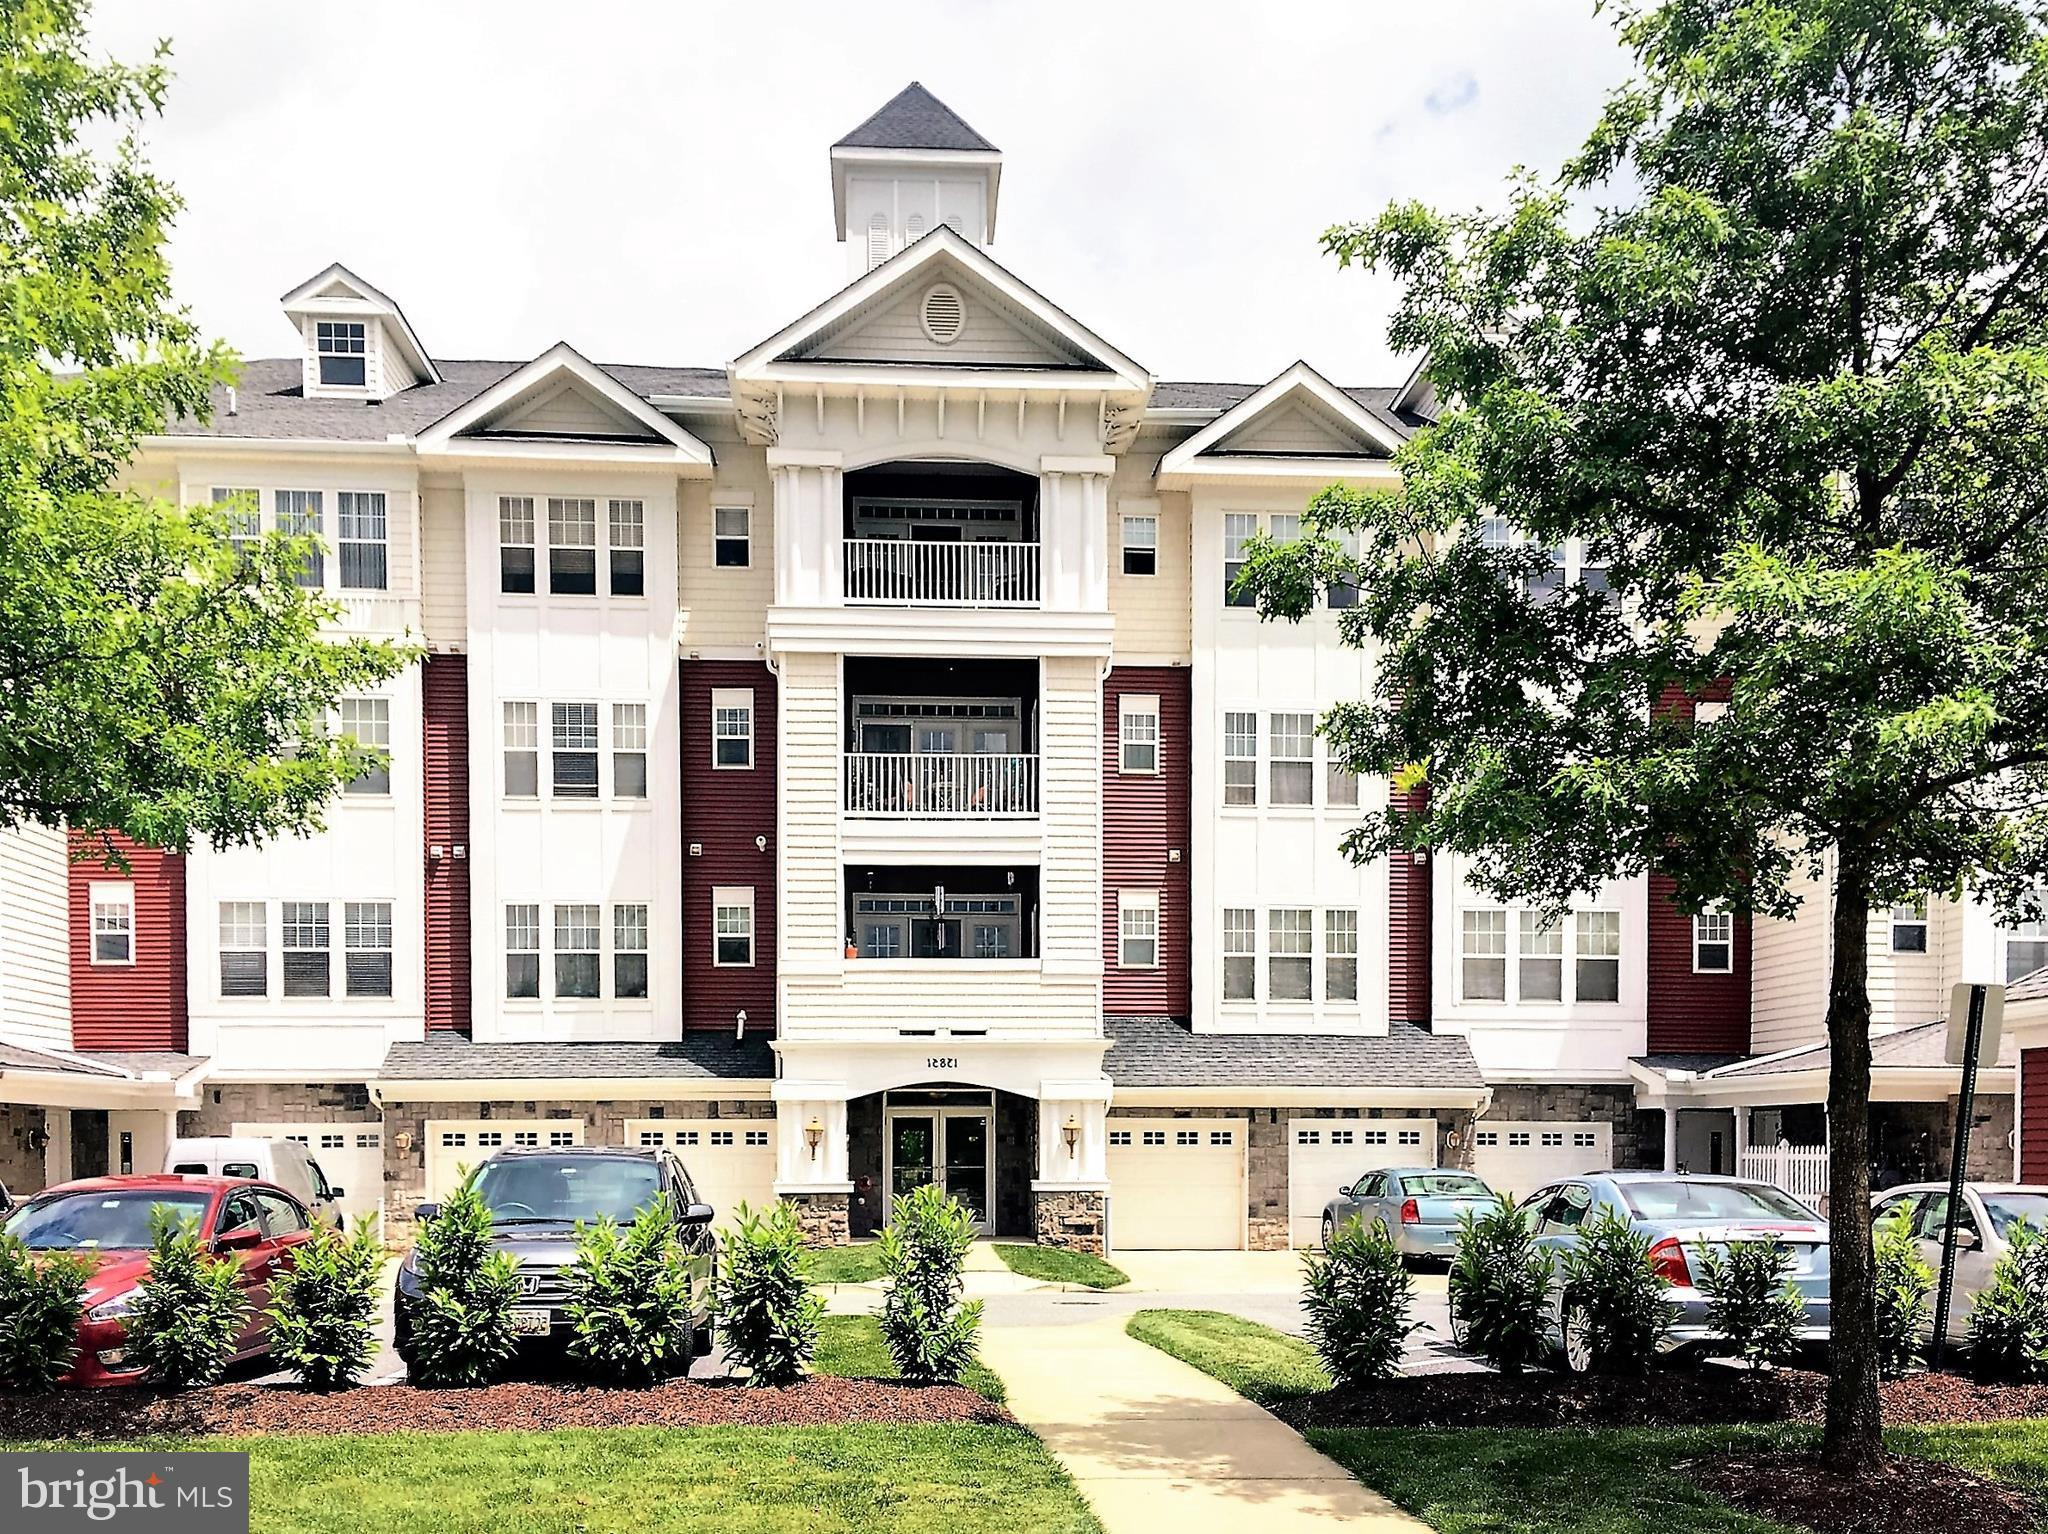 1875 Sq Ft Windsor Condo/Victoria Falls Active 55+ Community.  2BR,2BA w/HW Flrs, Sep DR + Eat-in Kitchen. 9Ft Ceilings. Balcony Off LR w/FP. Master Ste w/ Jacuzzi/Sep Shwr & Dual Vanities.Handicapped accessible, 2nd BA/Walk In Tub, High Toilets & Grab Bars. Attached X-large Handicapped Garage.  Fully Staffed Center w/Pools, Tennis, Exercise Rm, Social Clubs and MORE :)